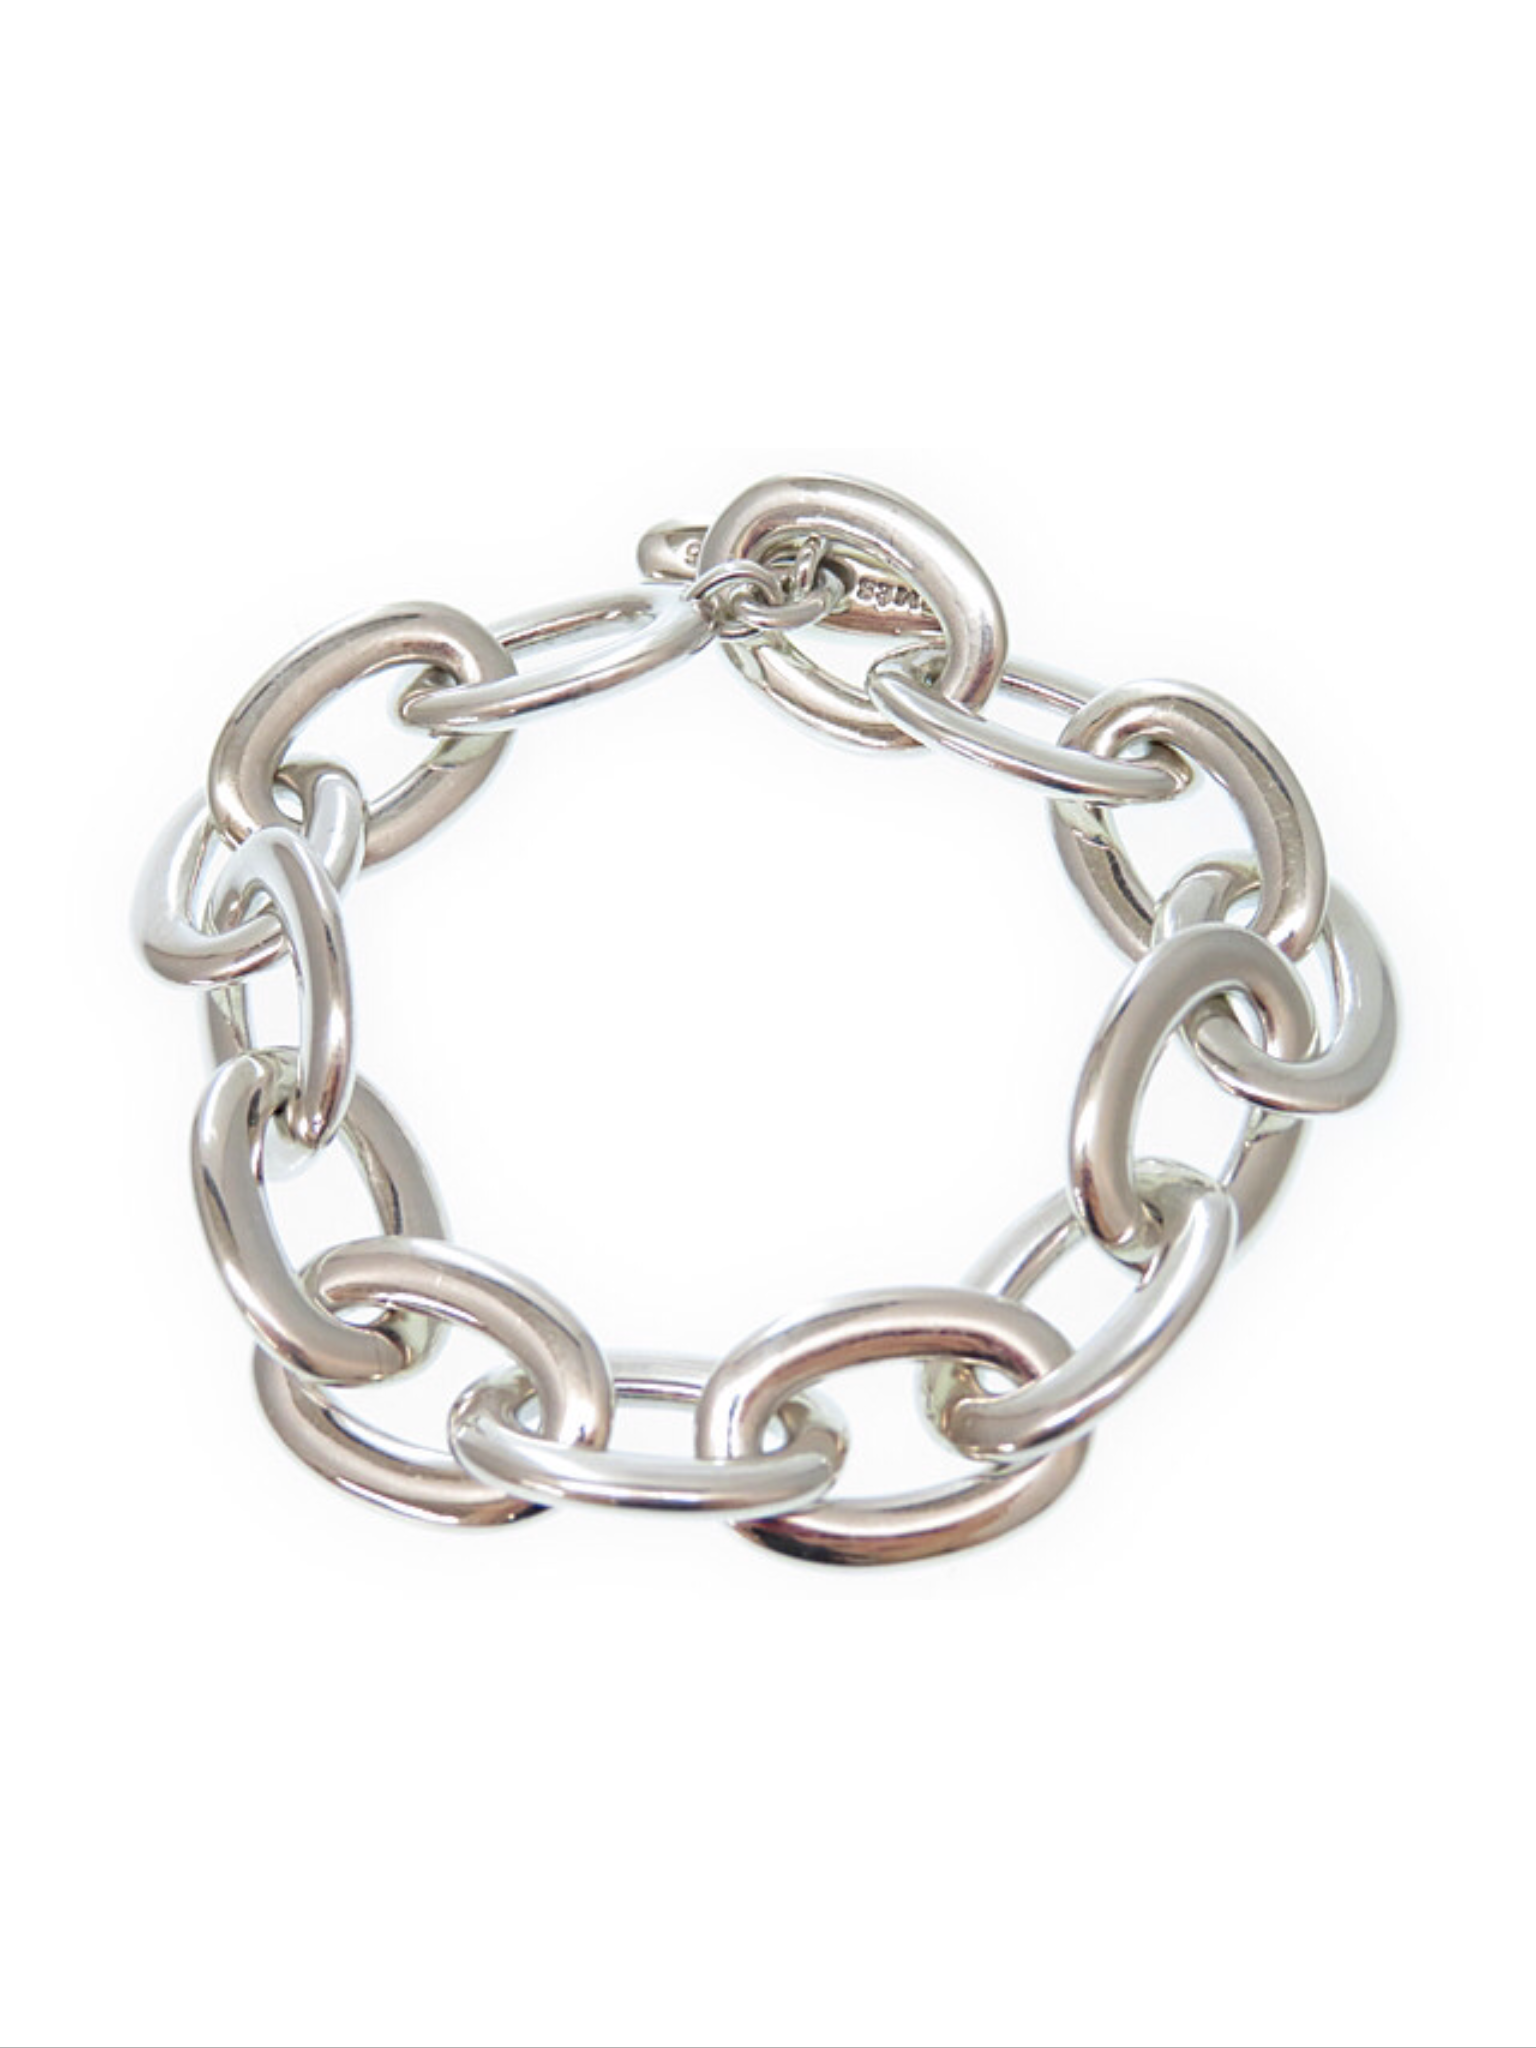 Hermes Silver Bracelet Anyone Know The Name Silver